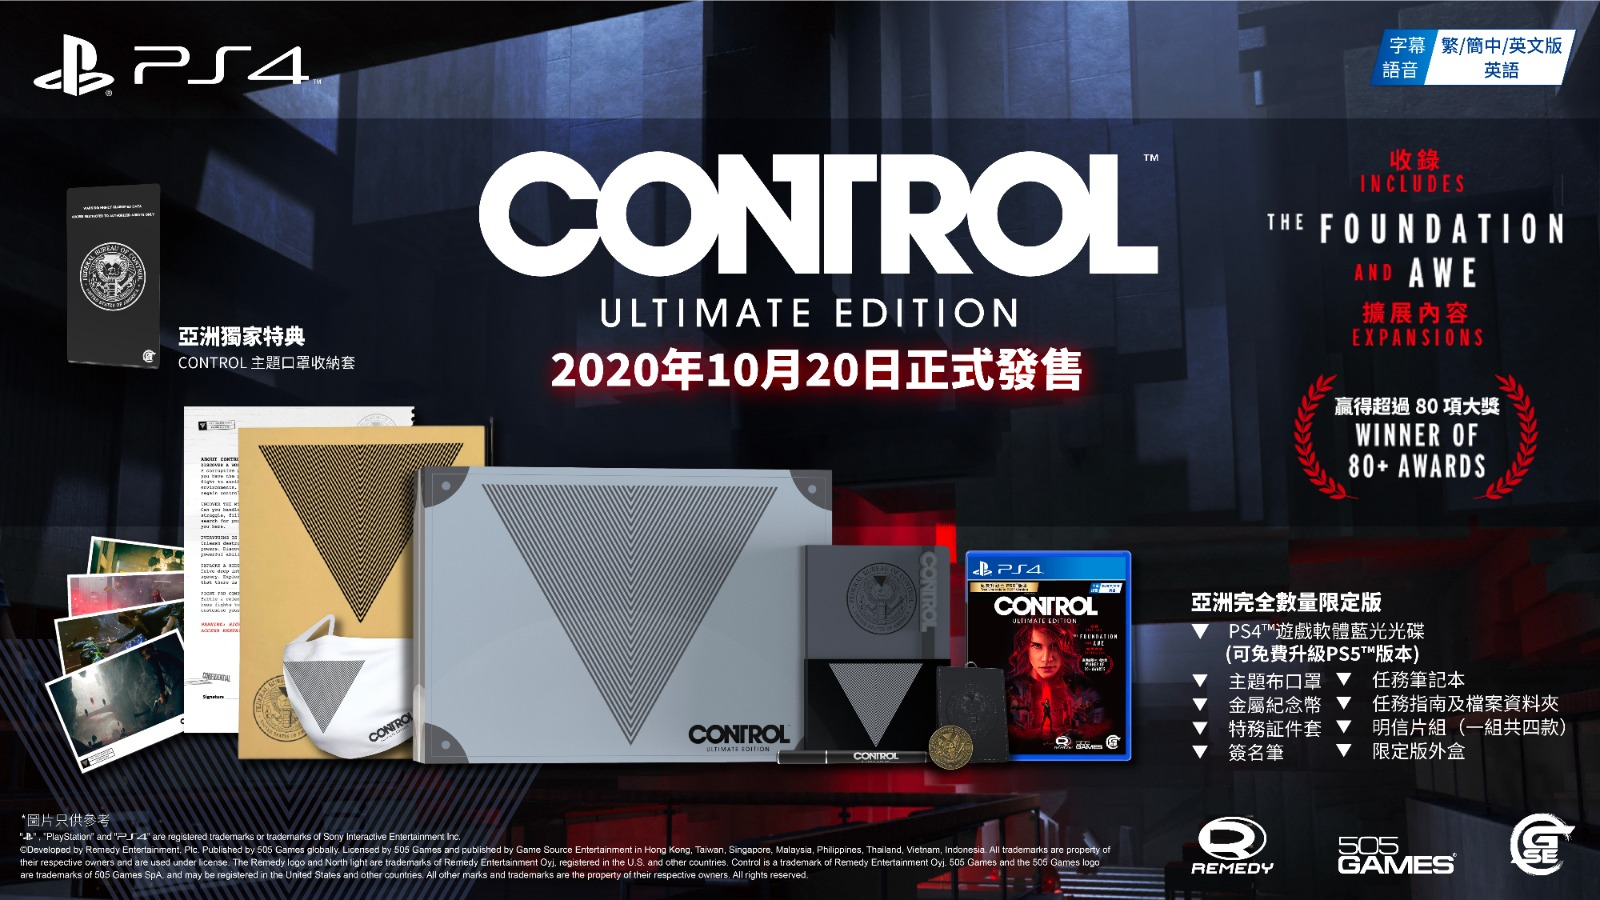 Control,控制,終極版,PS4,PS5,Remedy Entertainment,505 Games,GSE,